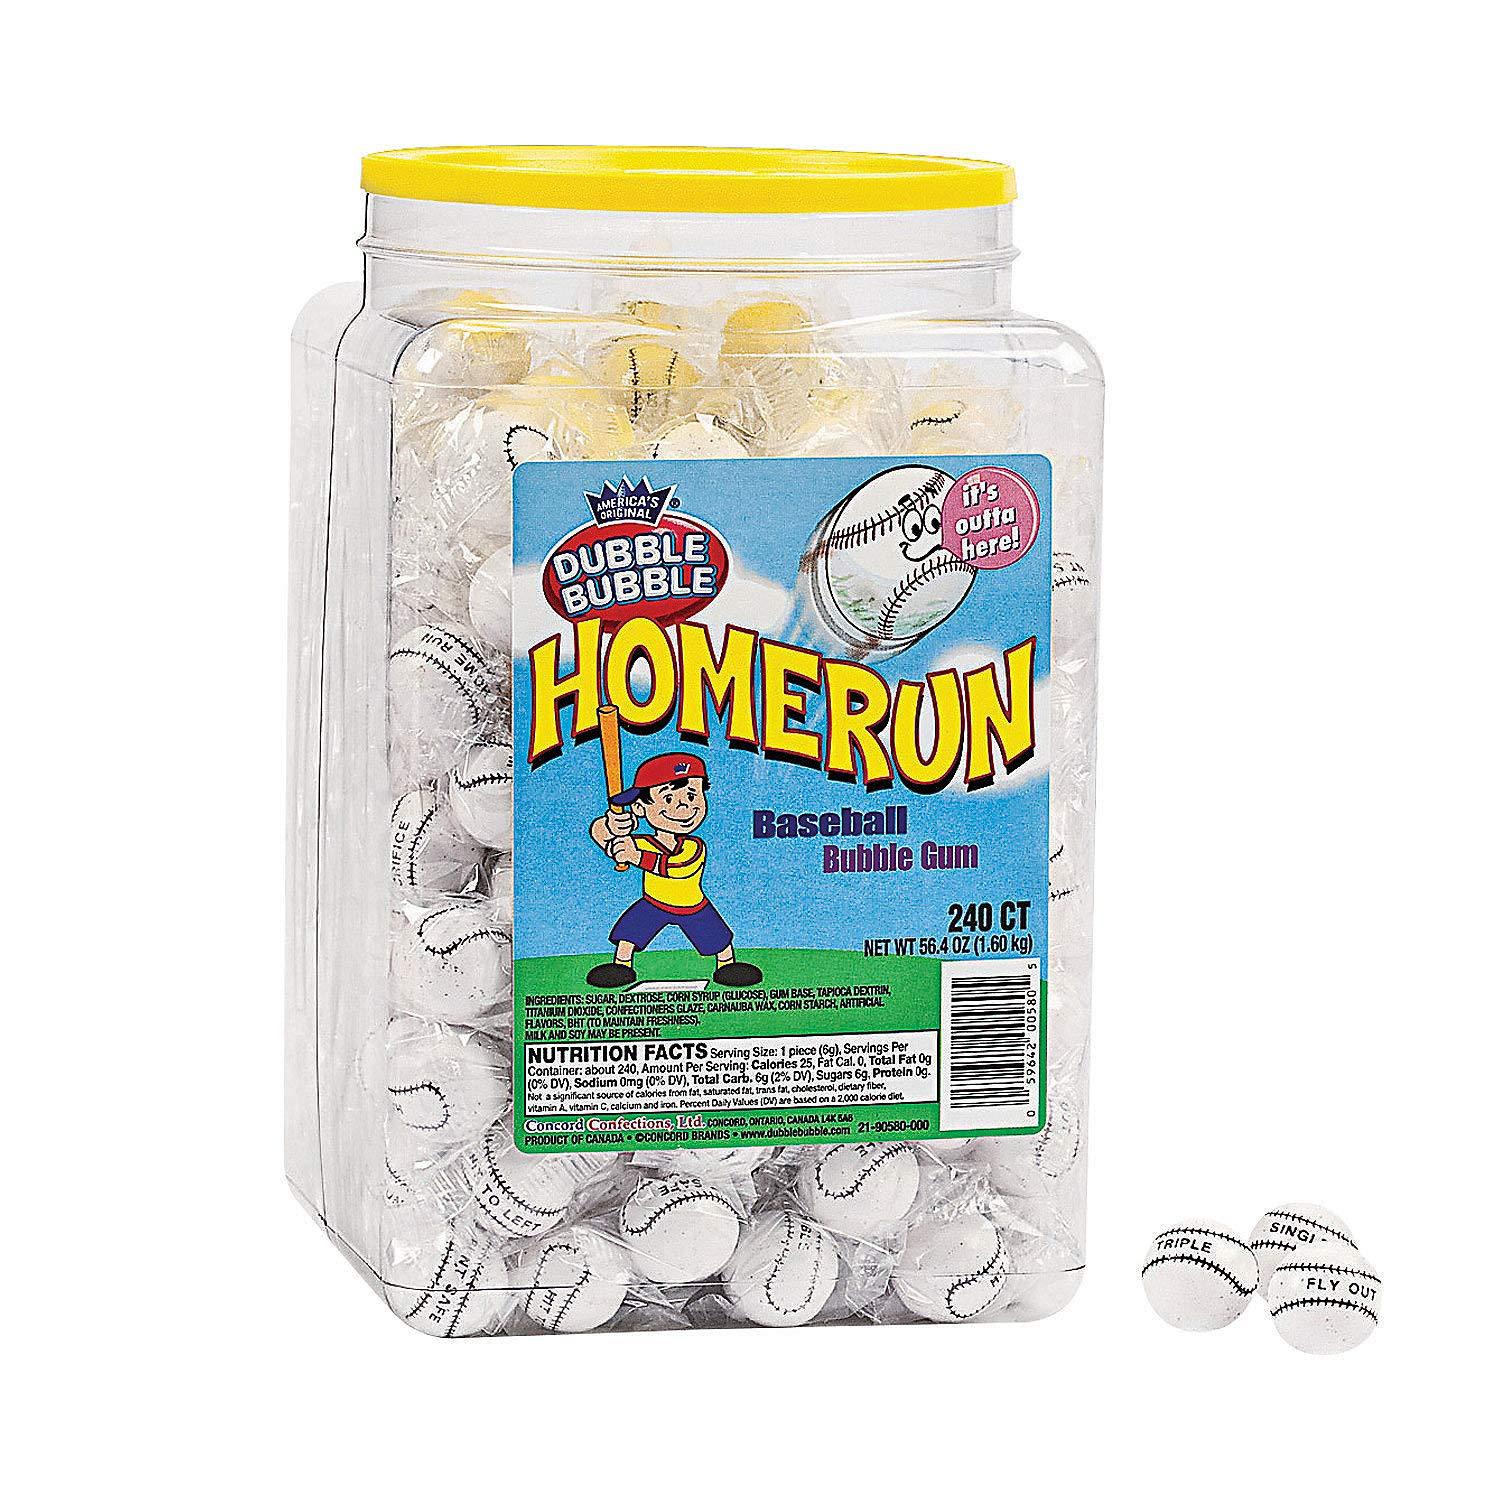 Dubble Bubble Homerun Gumballs - 240 Individually Wrapped